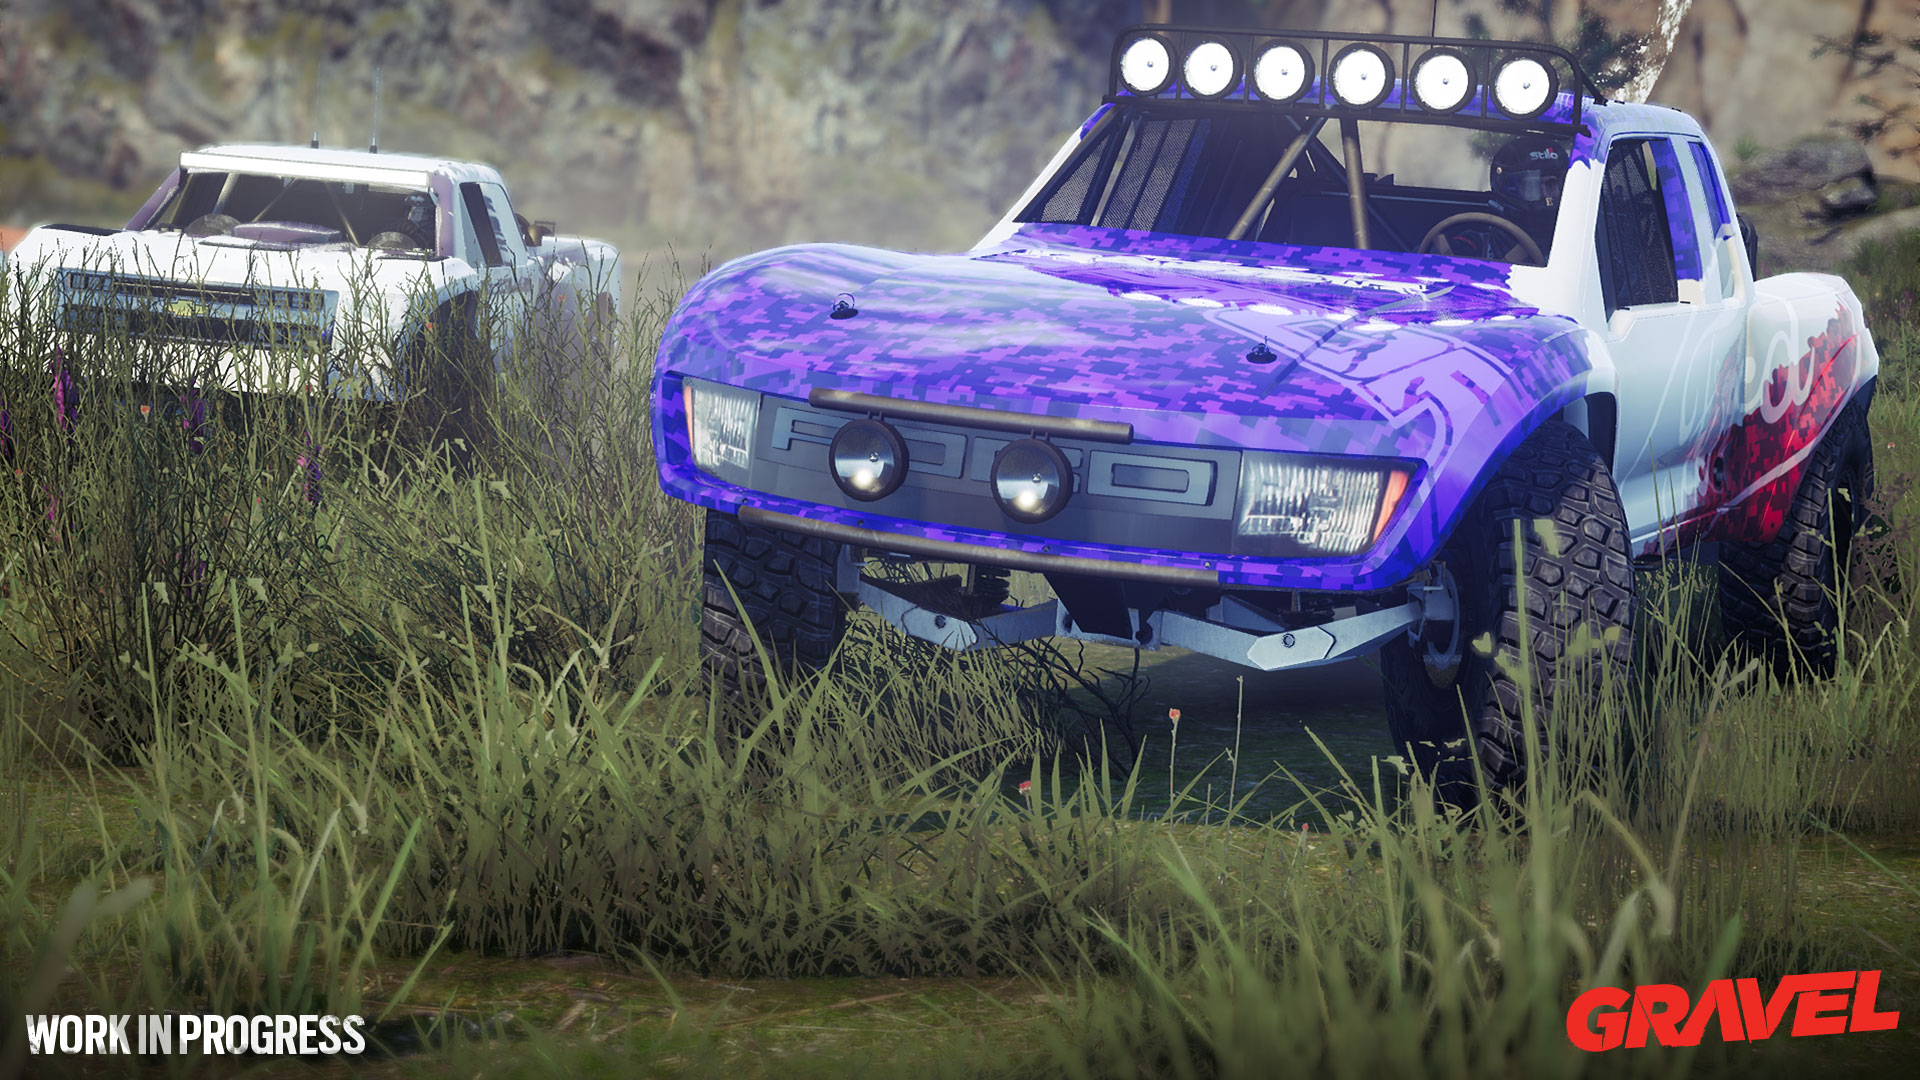 New gameplay trailer and content details revealed for Gravel